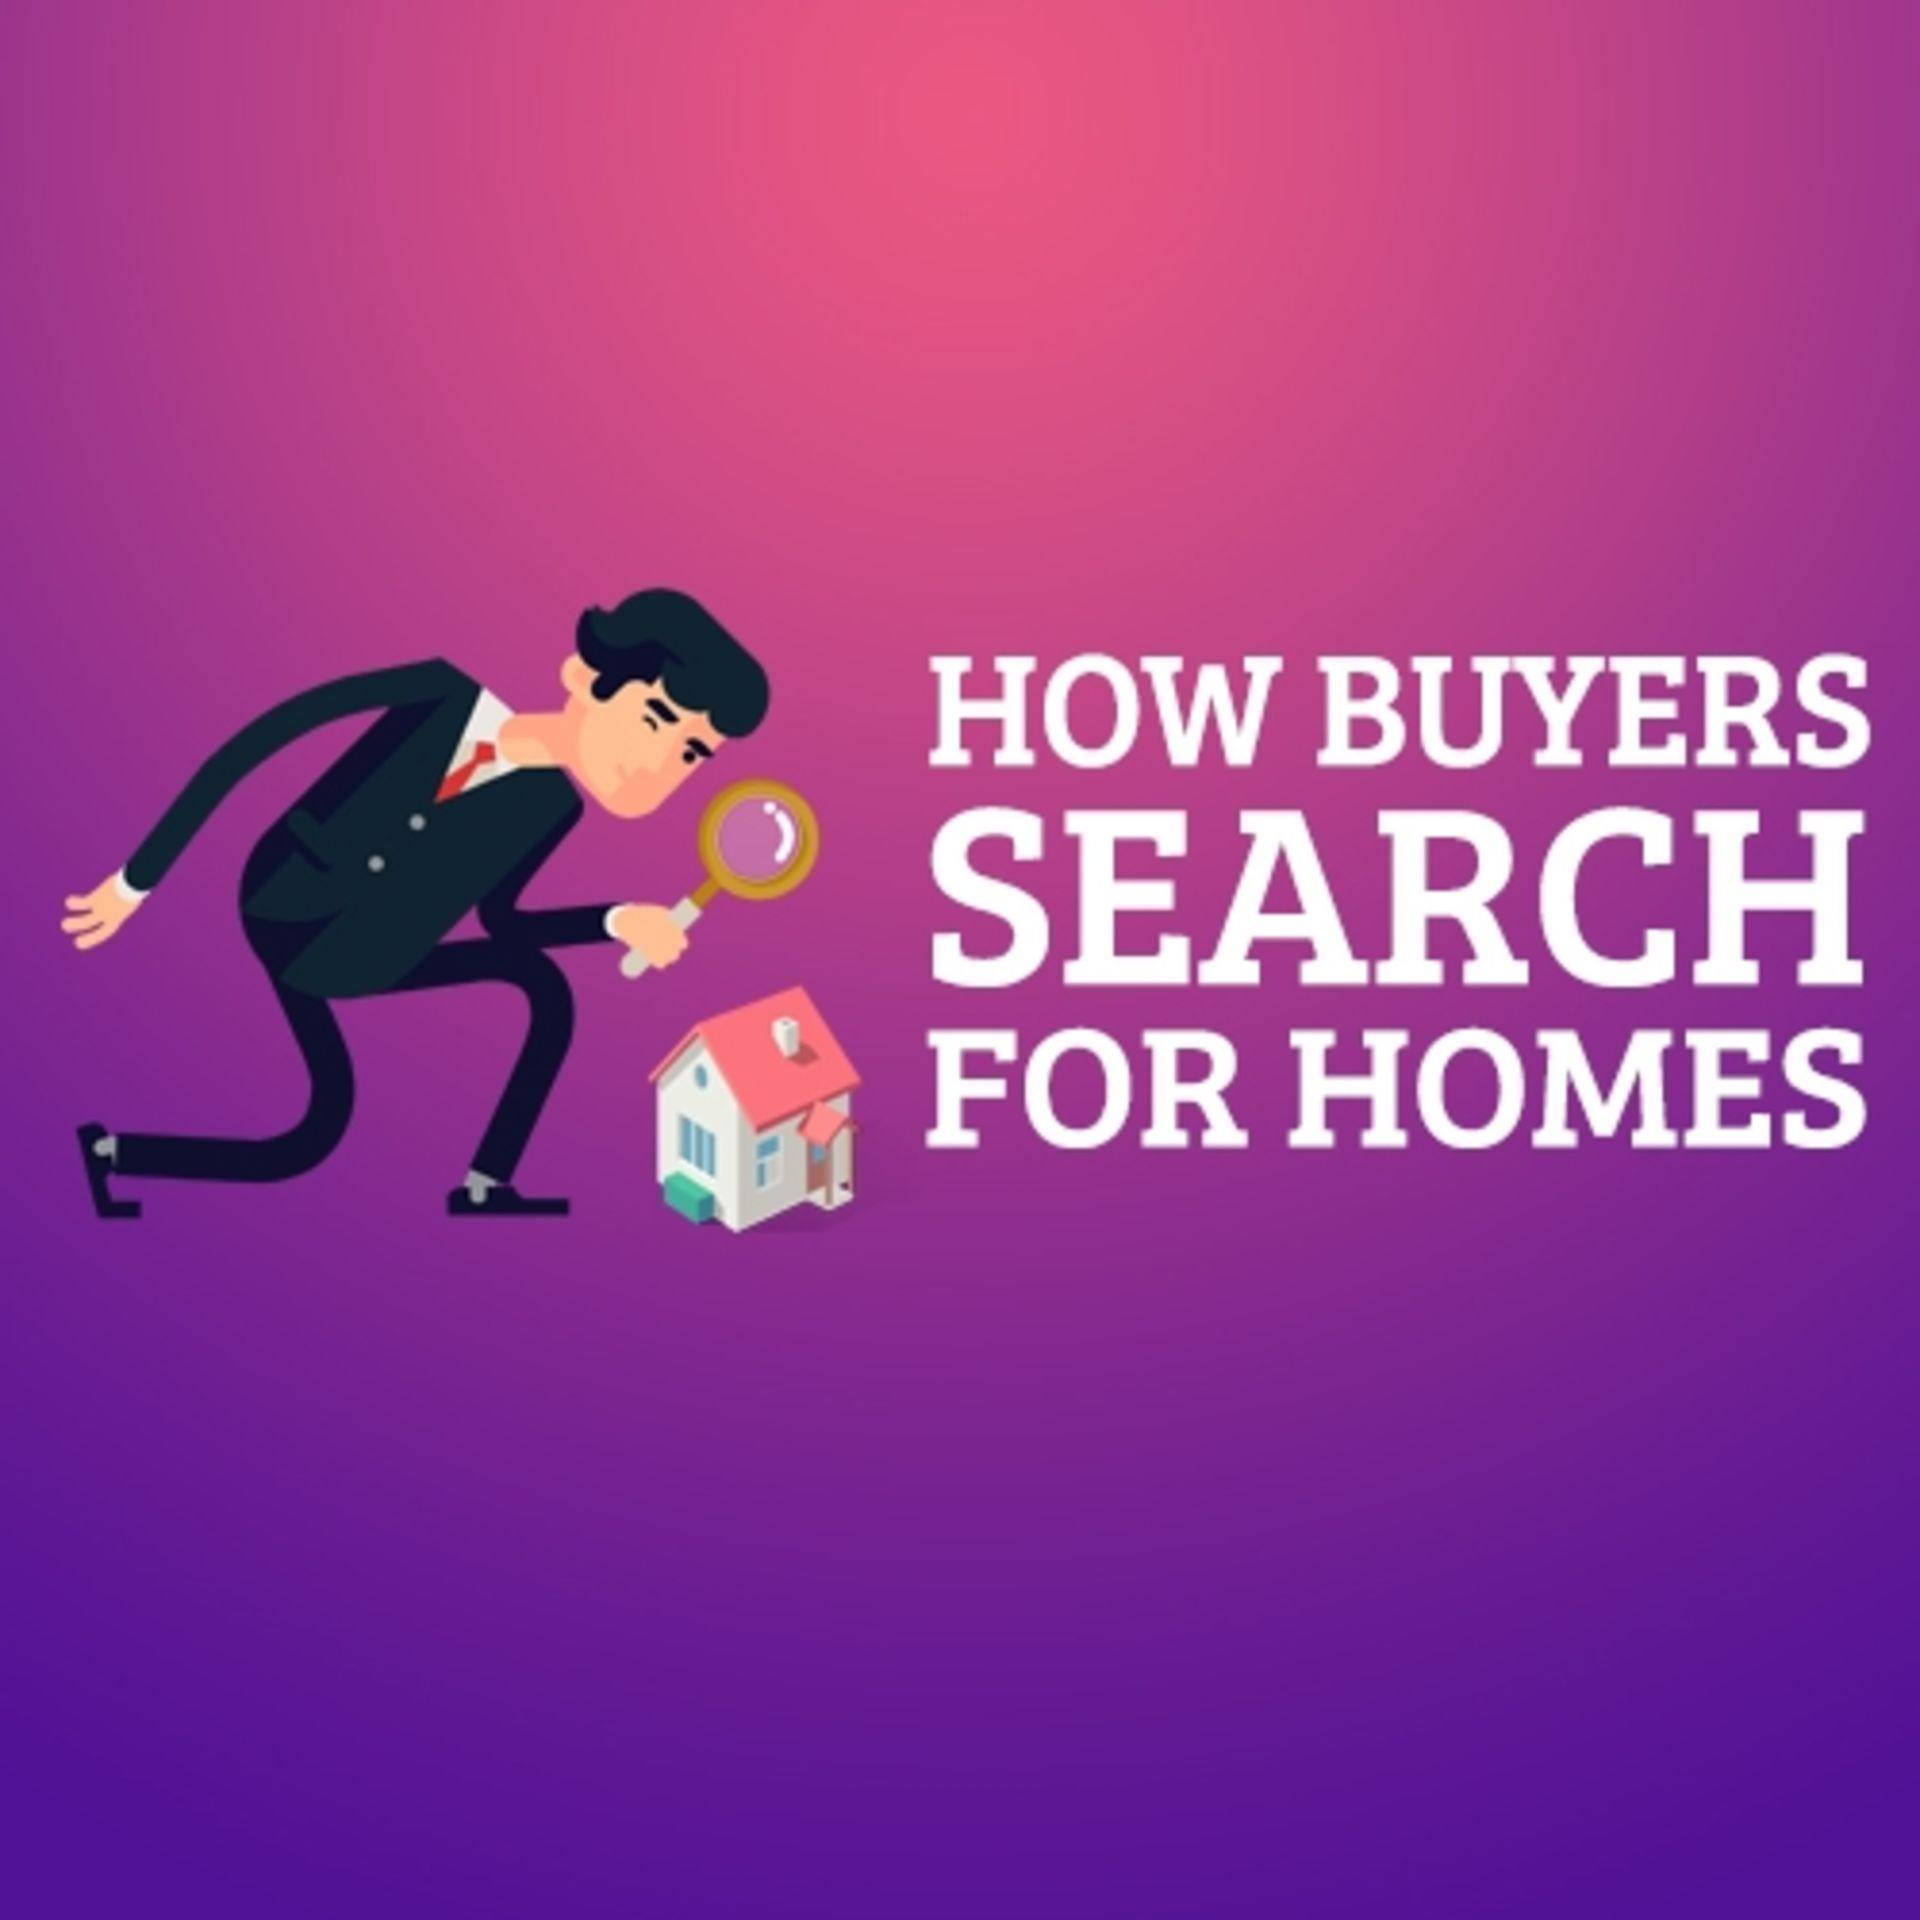 How Buyers Search For Homes